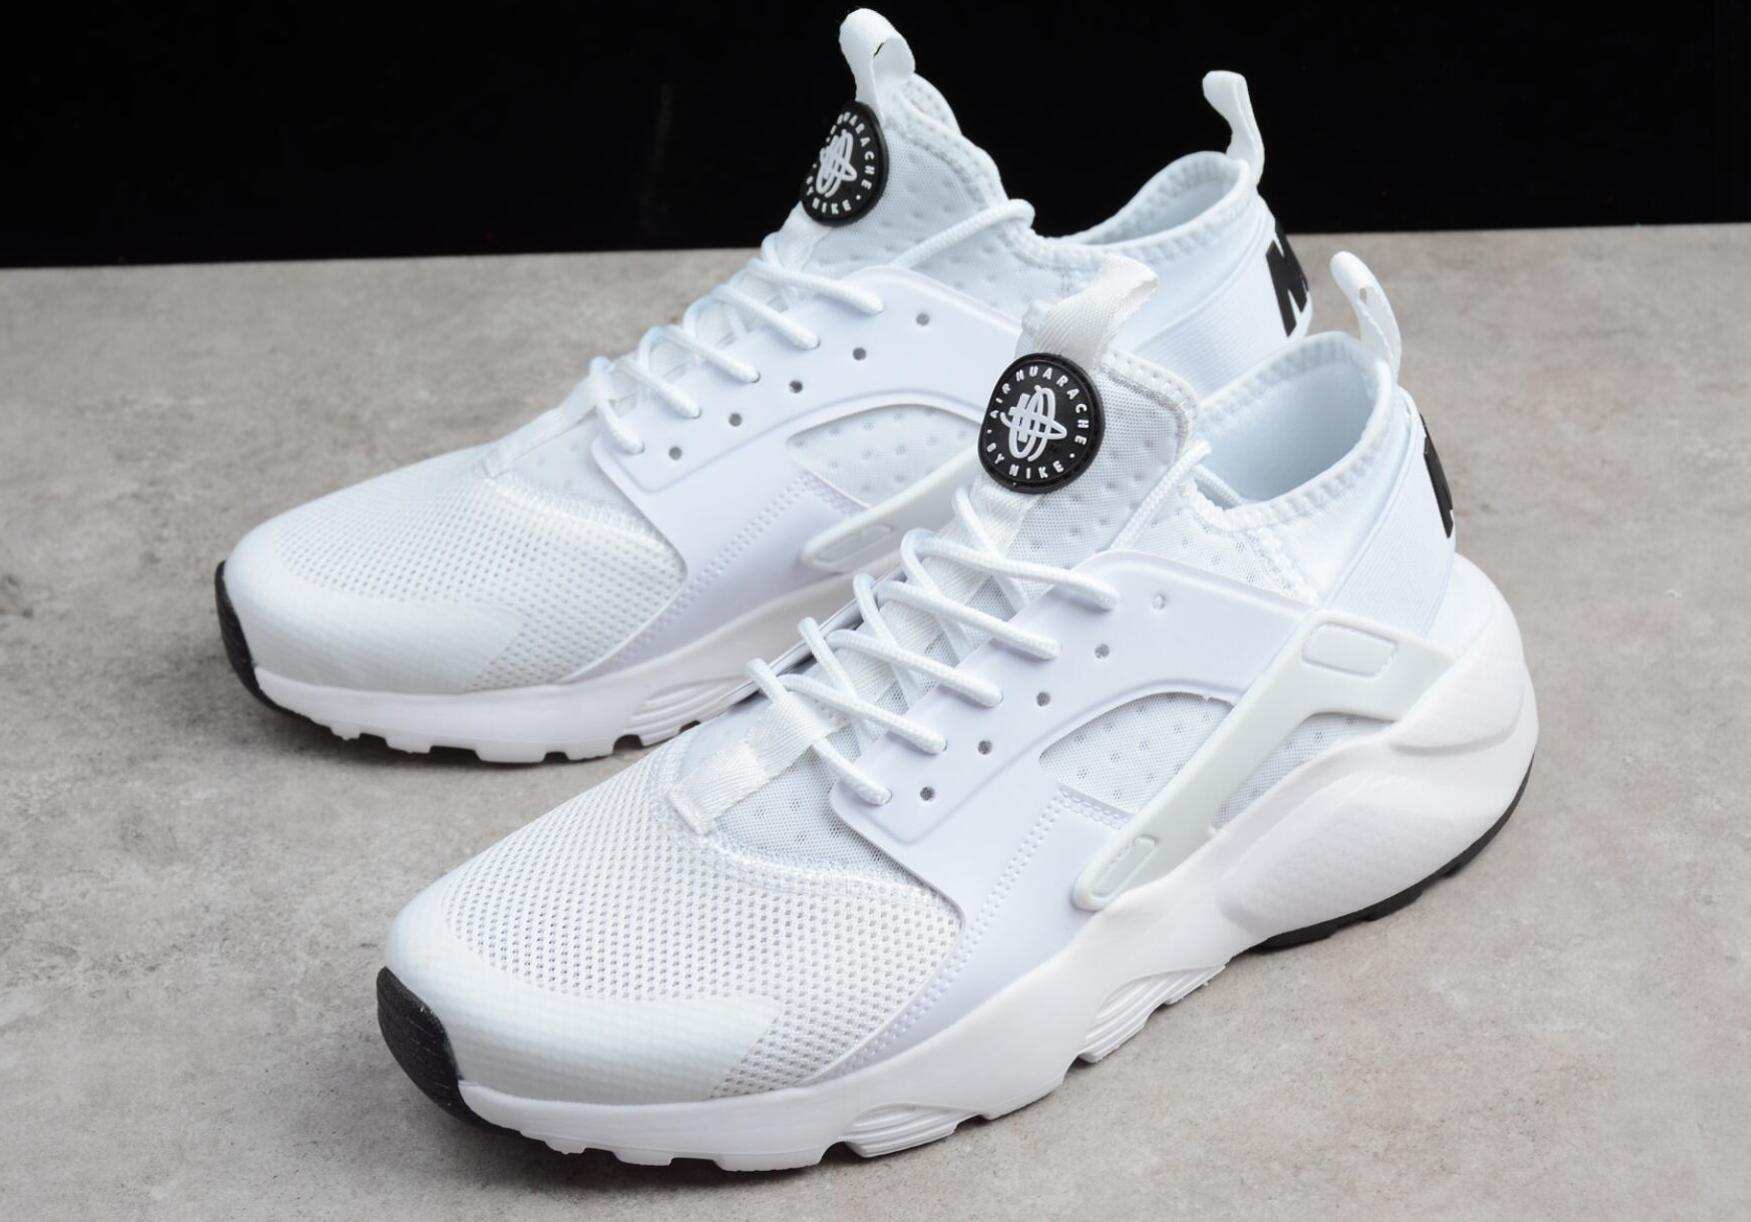 2019 Huarache Run Ultra Huarache 4.0 1.0 Trail Hoes Off Triple White Black  Trainers For Men Tn Women Outdoors Shoes Sneakers Buy Shoes Online Slip On  ...